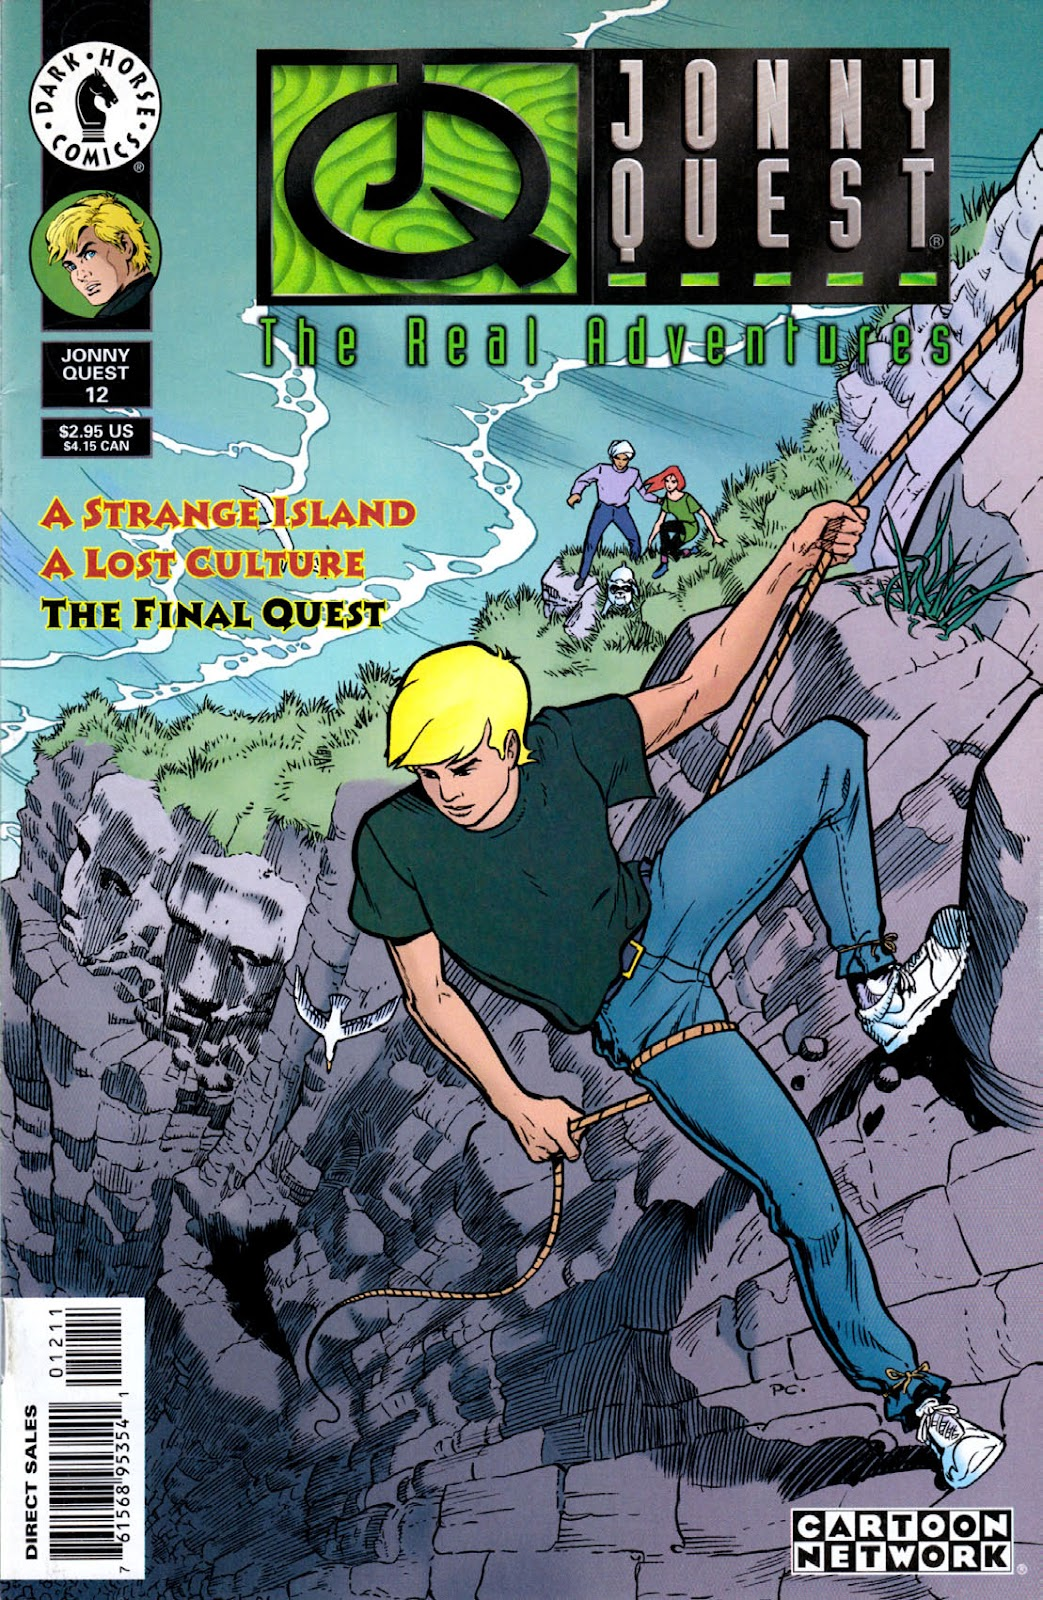 Read online The Real Adventures of Jonny Quest comic -  Issue #12 - 1